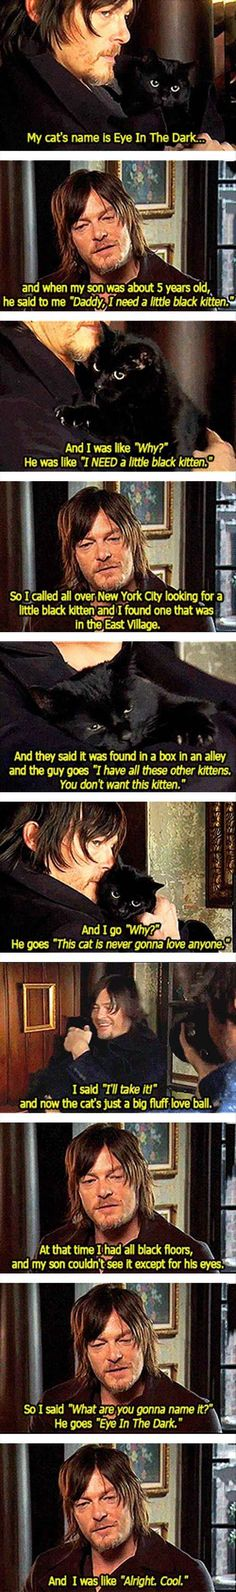 The story of Norman Reedus & Eye In The Dark: